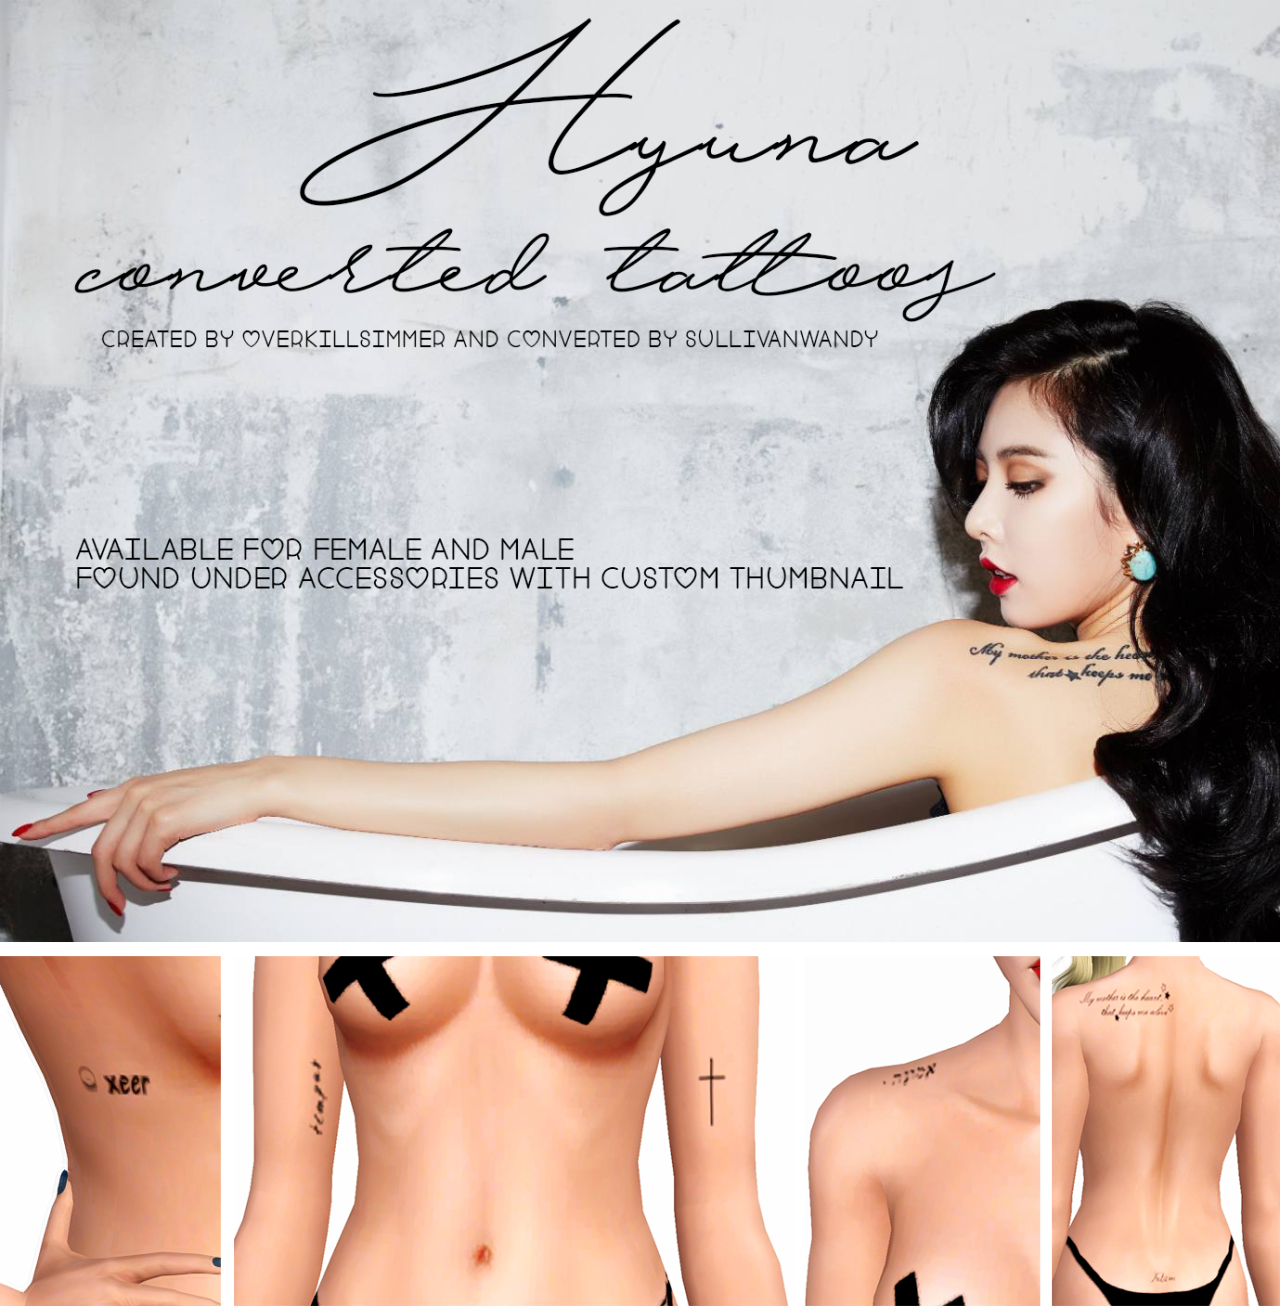 Hyuna Converted Tattoos от sullivanwandy